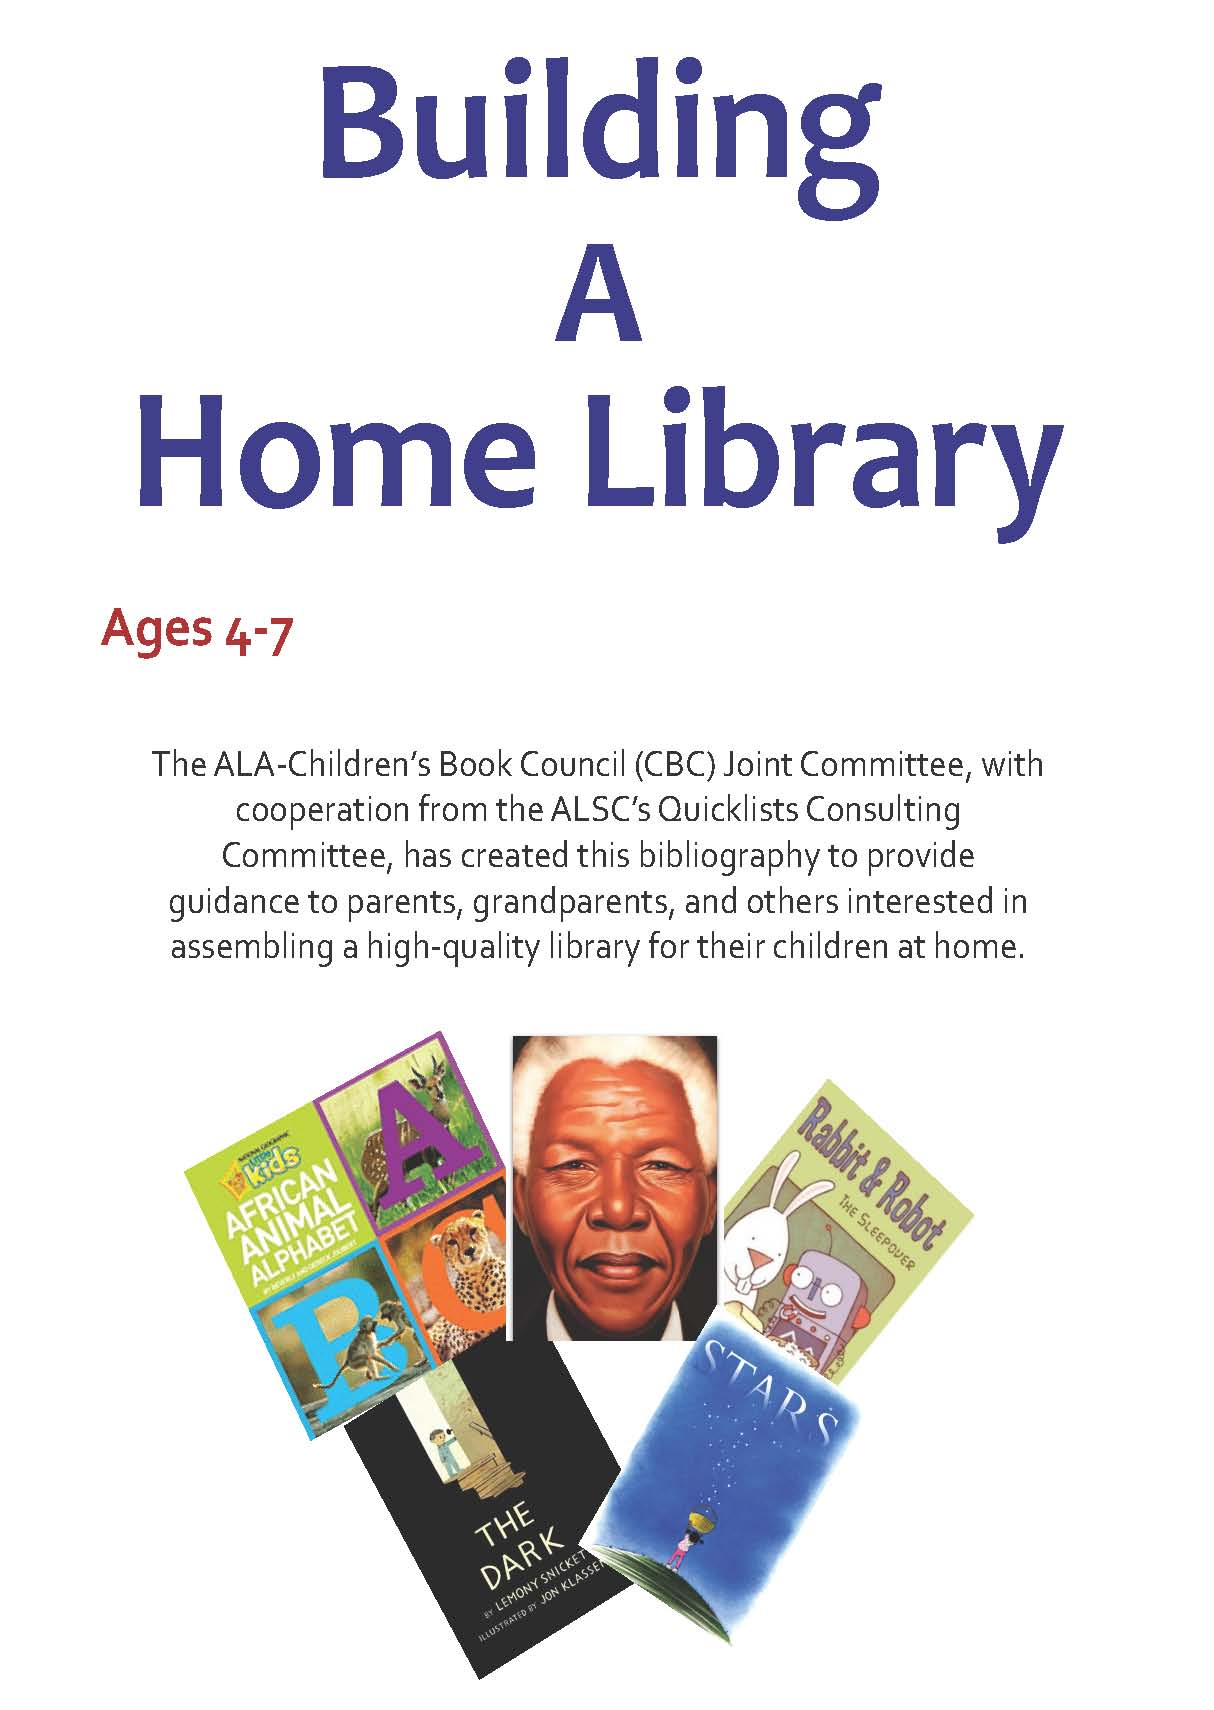 2014 'Building a Home Library' bibliographies now